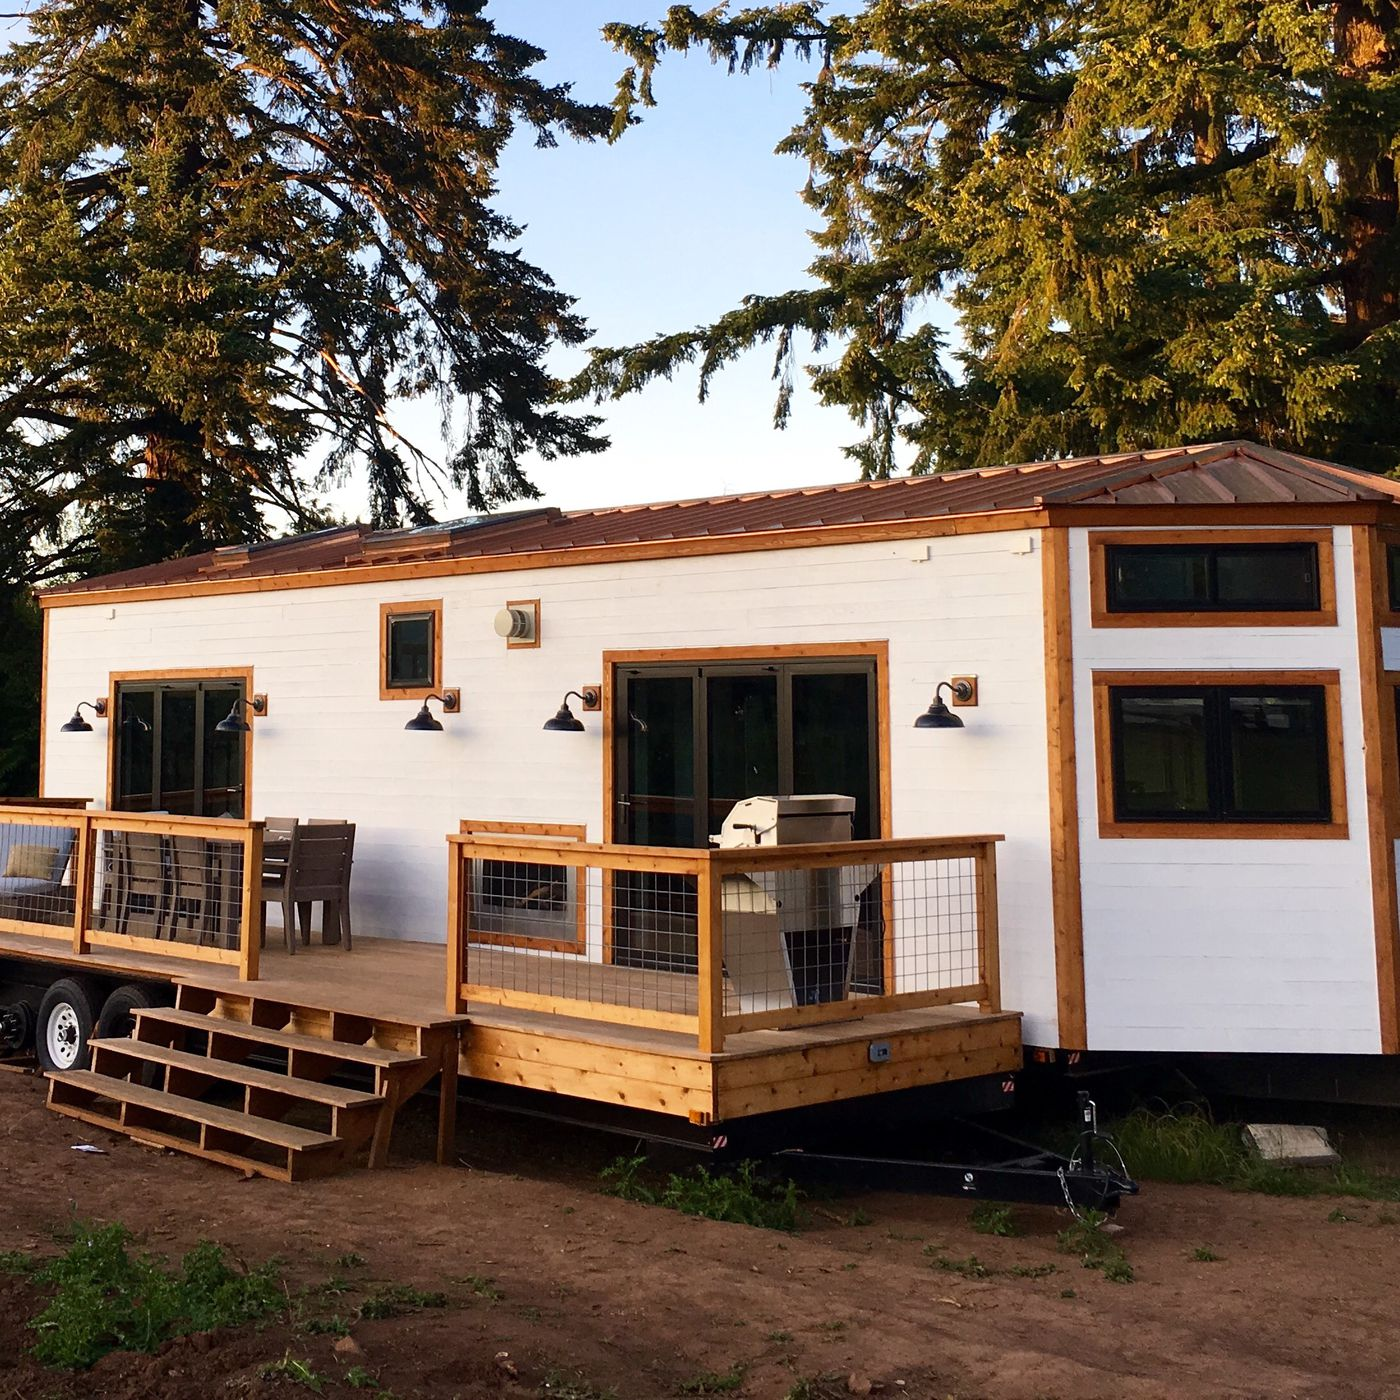 400 Square Foot Hawaiian Tiny House Brings The Outdoors In Curbed,Portable Kitchen Island Ideas On A Budget